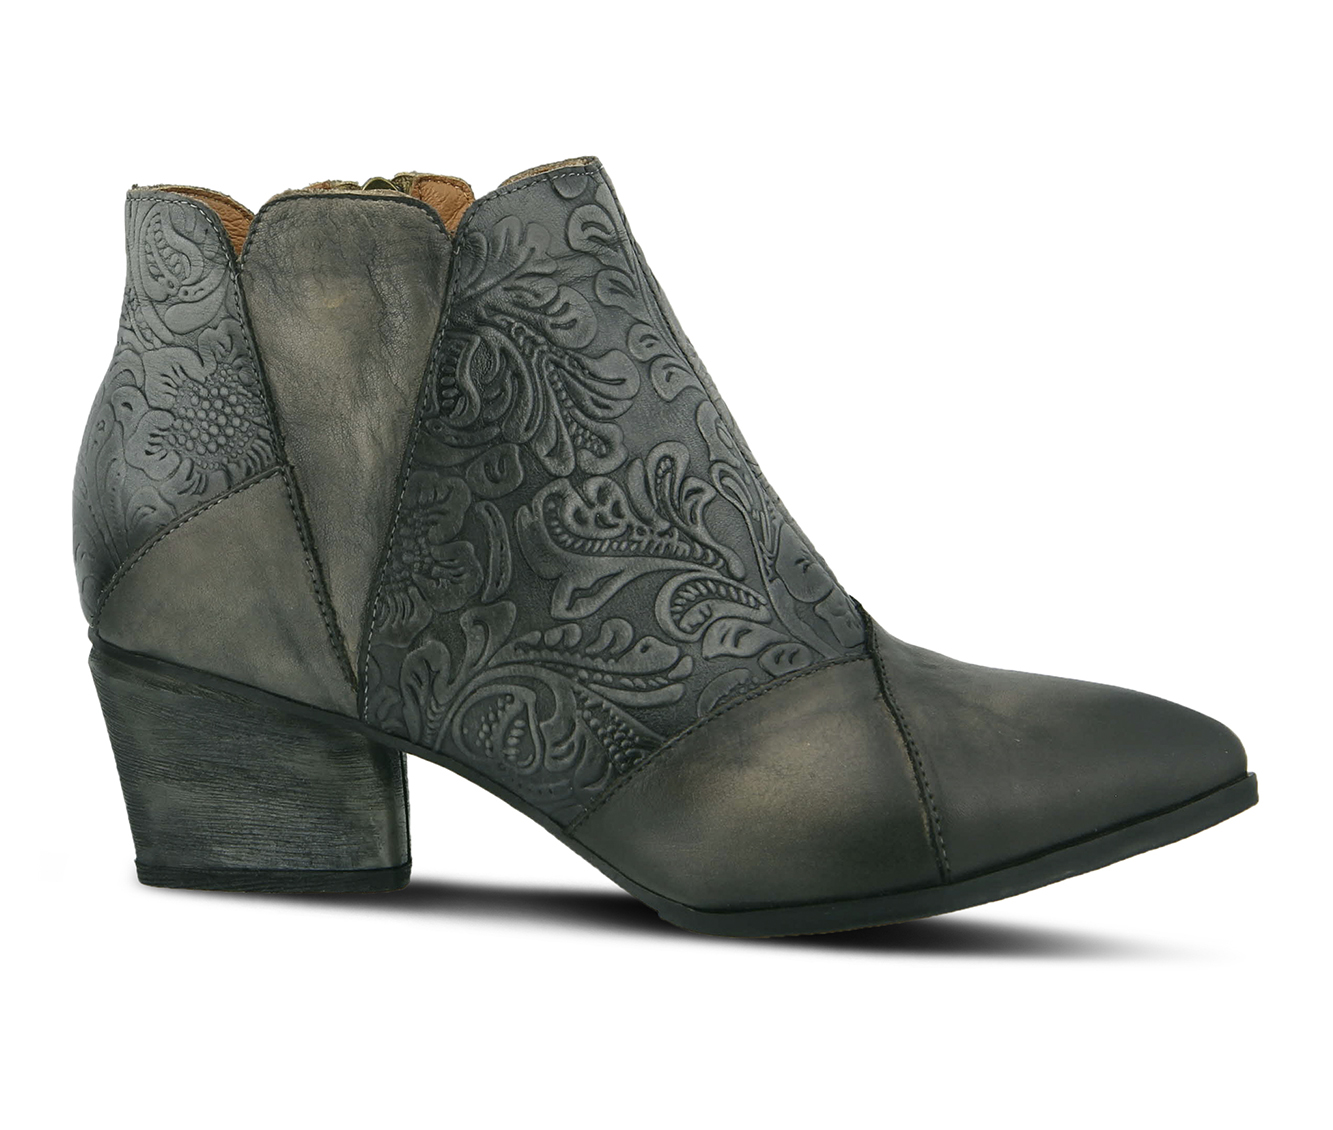 L'Artiste Melodie Women's Boots (Gray Leather)